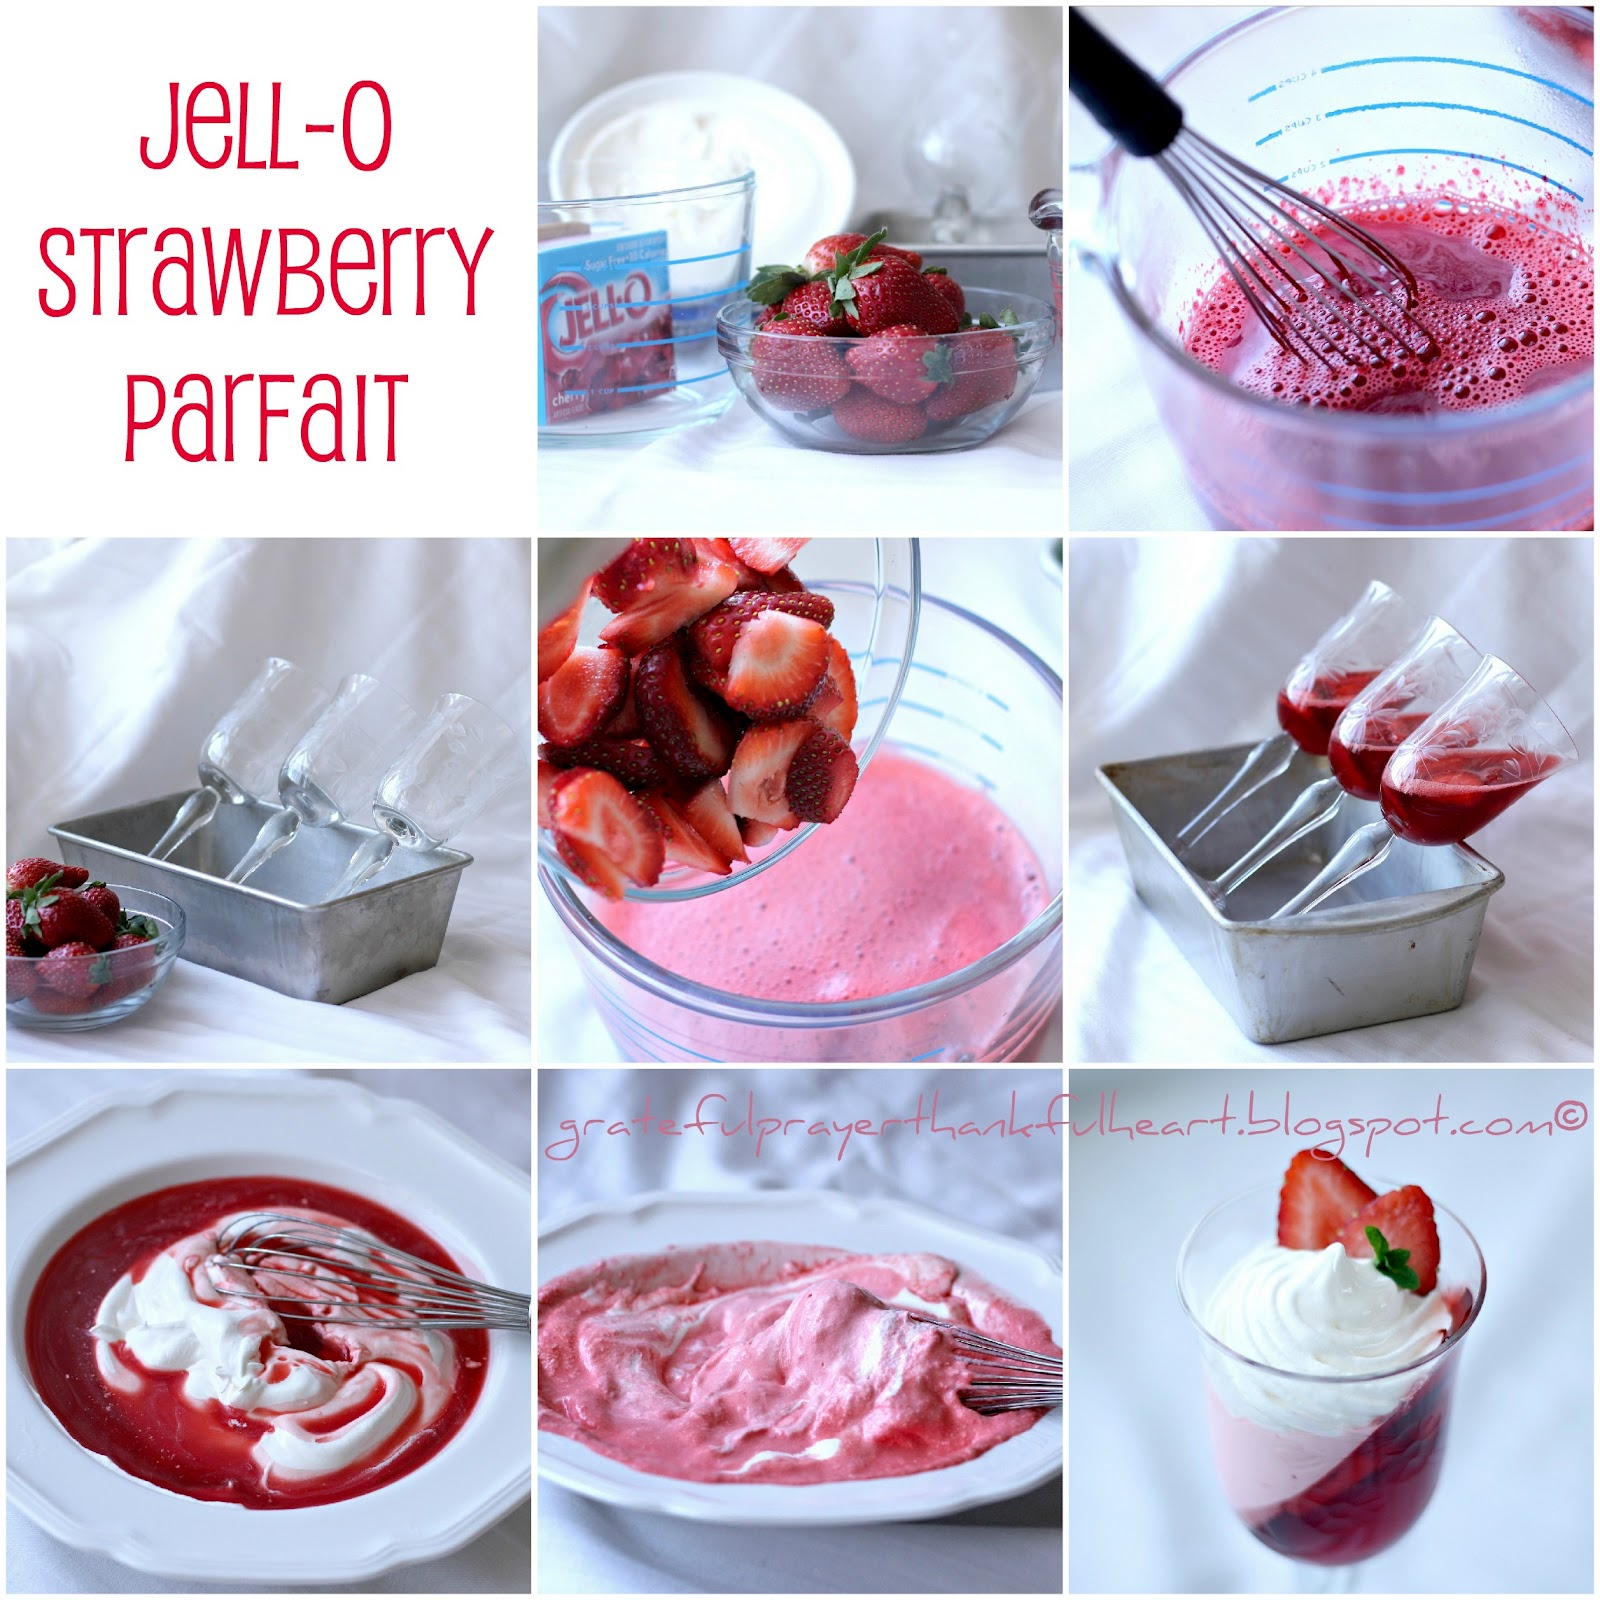 Jell-O Strawberry Parfait how to